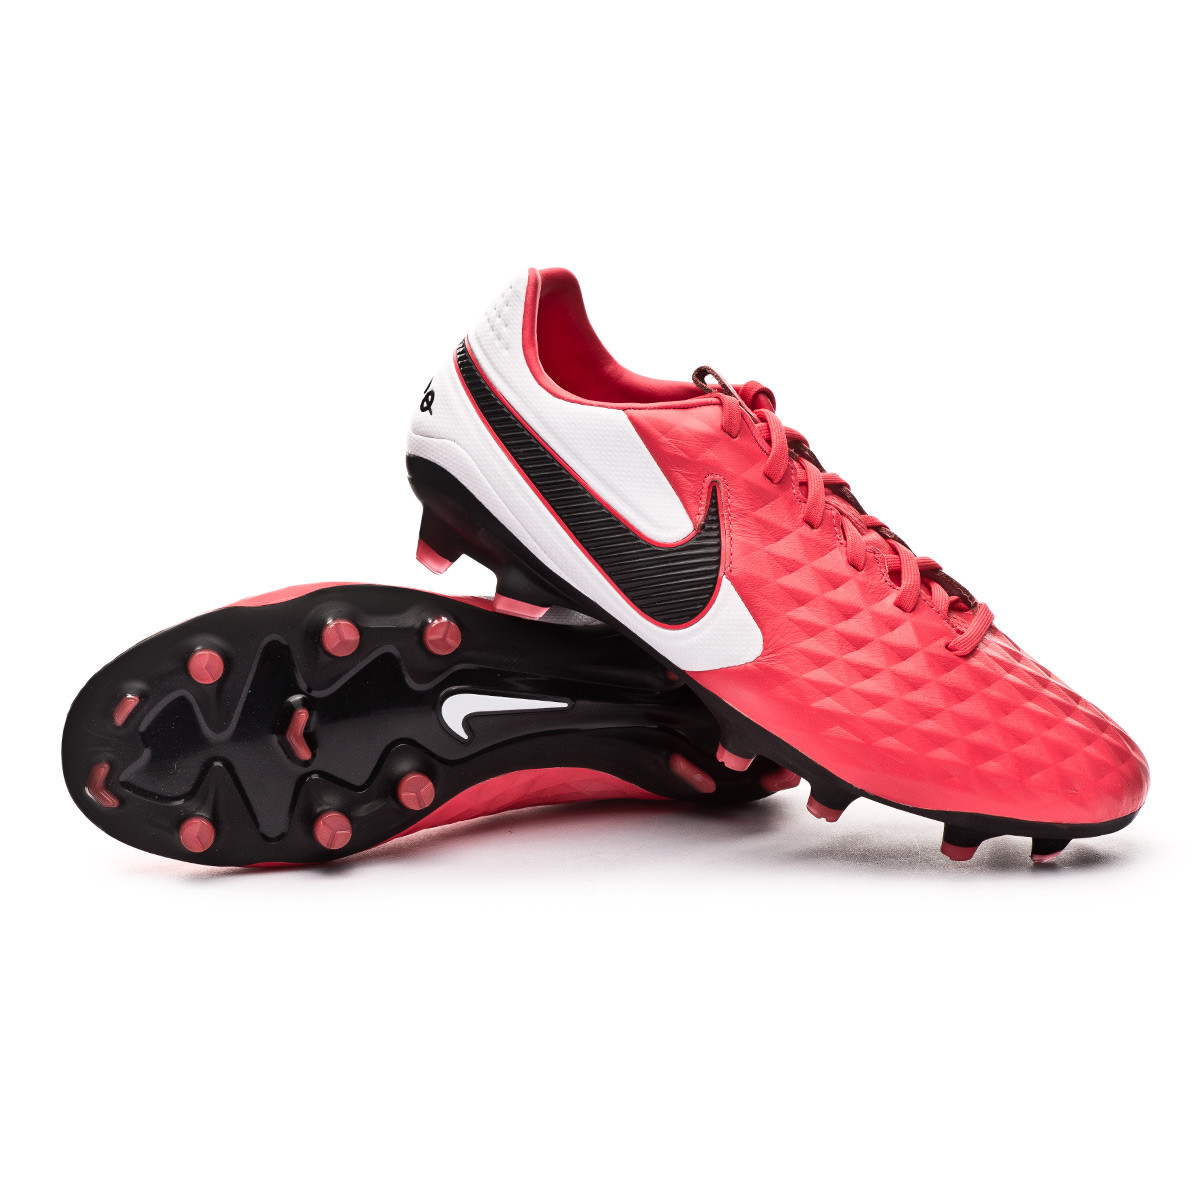 Chaussures de Football Mixte Adulte Nike Tiempo Legend 8 Pro FG